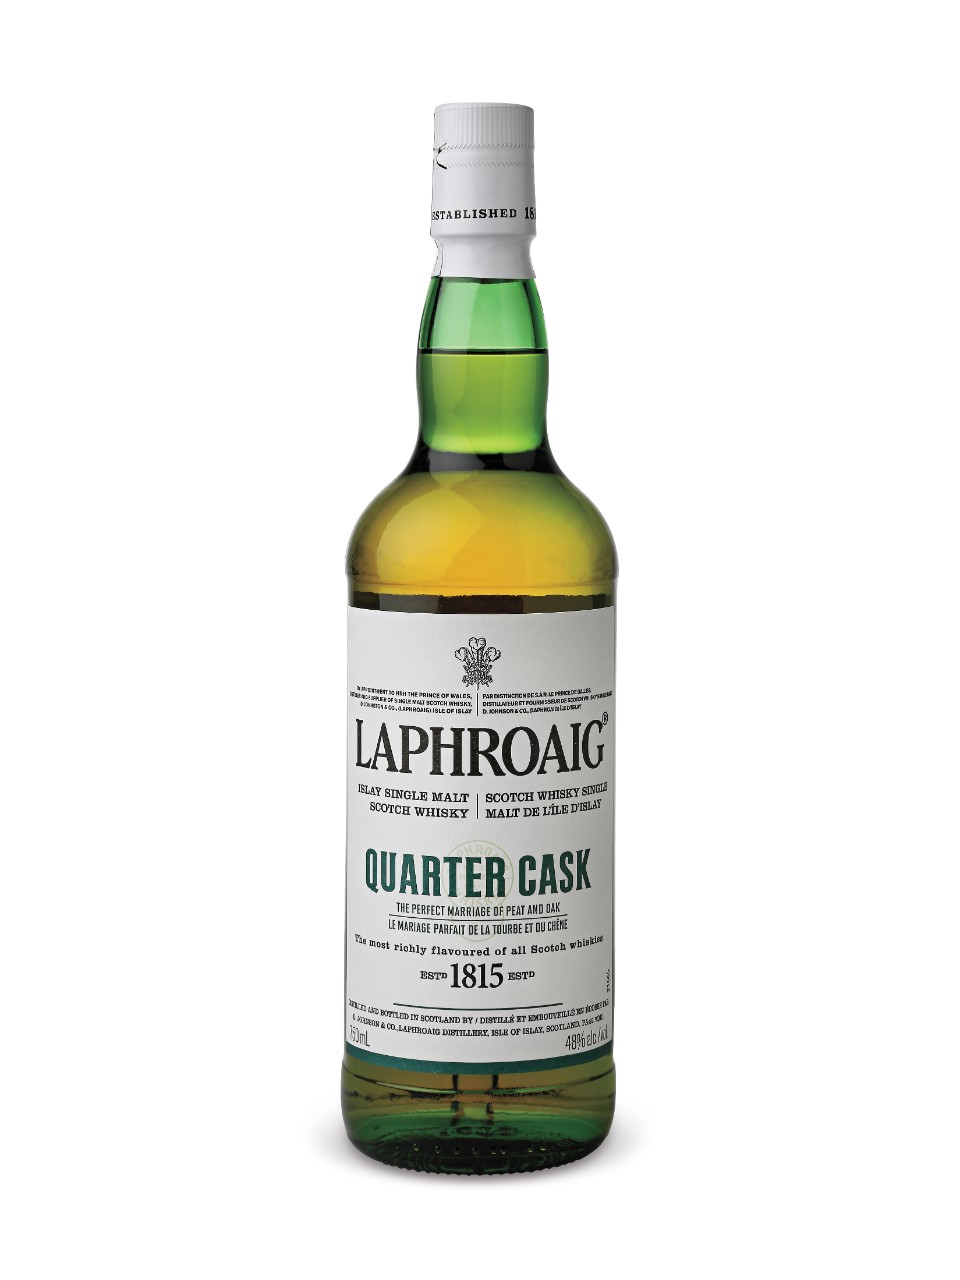 Image for Laphroaig Quarter Cask Islay Single Malt Scotch Whisky from LCBO